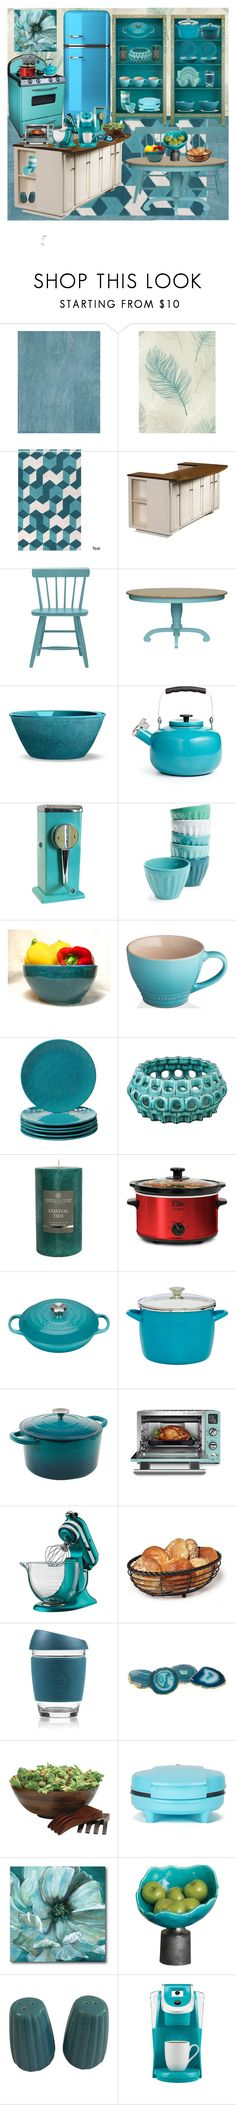 """Teal kitchen"" by gothbear13 ❤ liked on Polyvore featuring interior, interiors, interior design, home, home decor, interior decorating, Osborne & Little, On Your Feet, John Lewis and DutchCrafters"